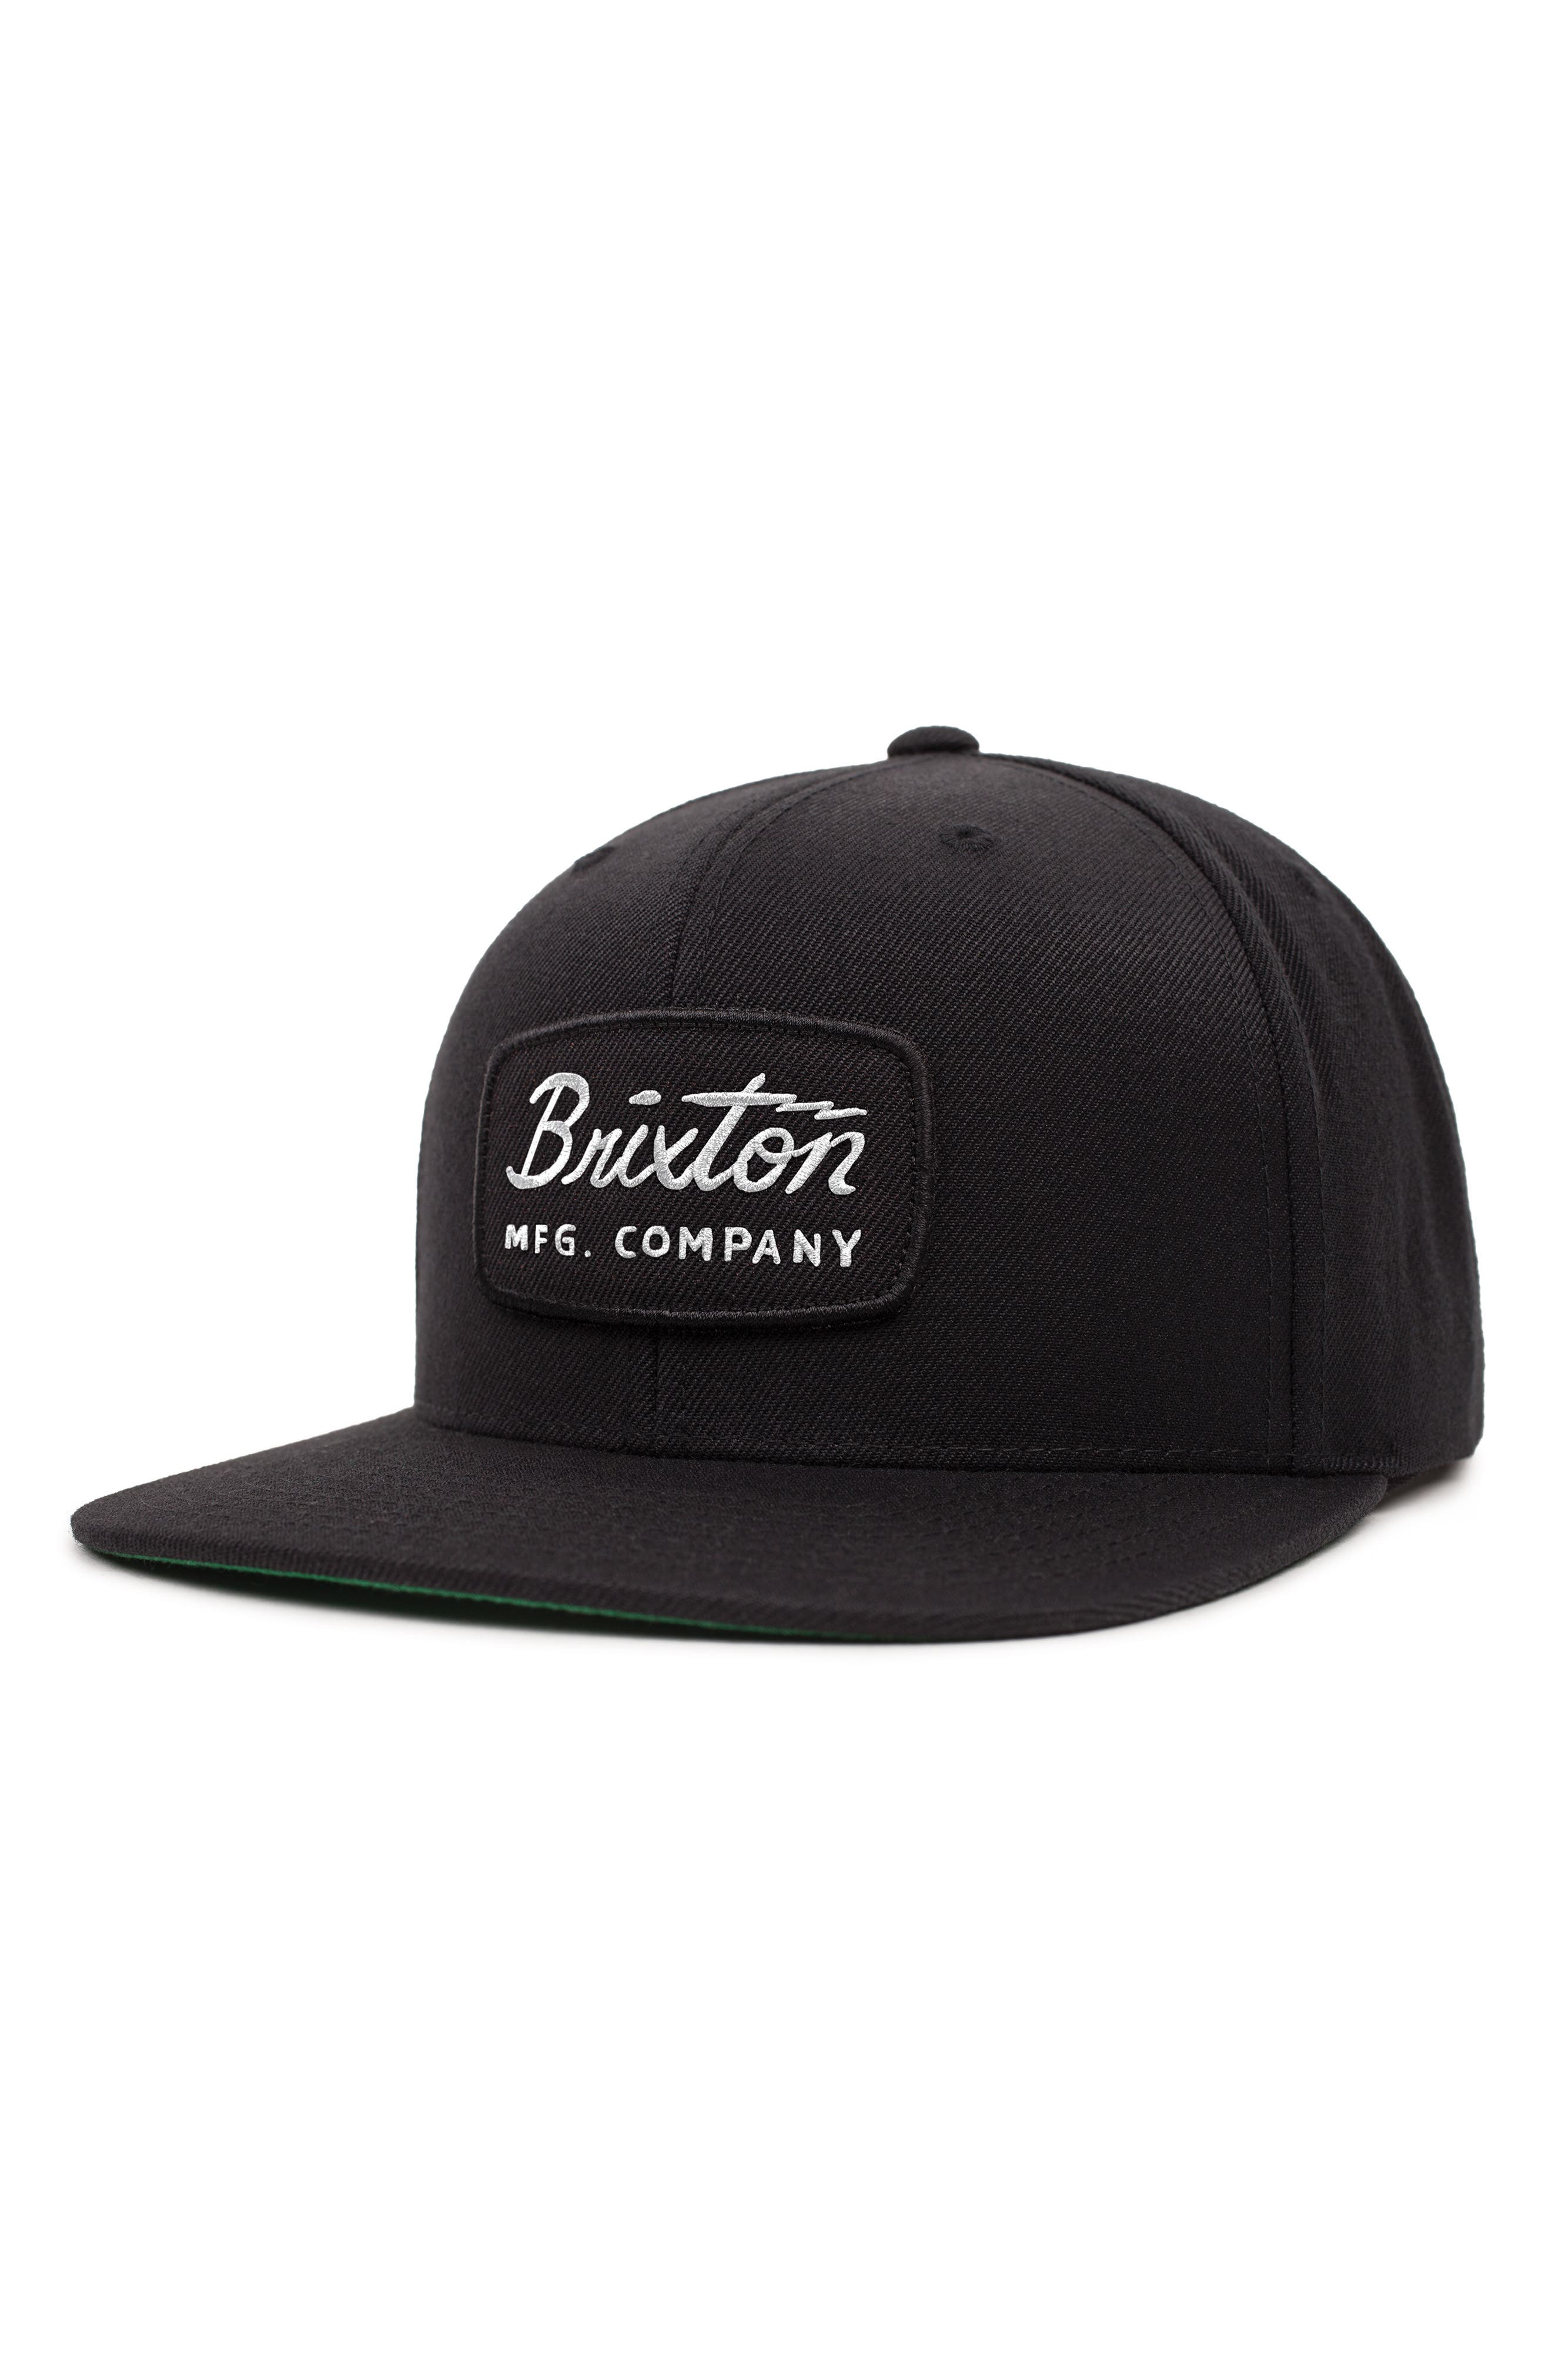 7200a54098f52 Men's Brixton View All: Clothing, Shoes & Accessories   Nordstrom